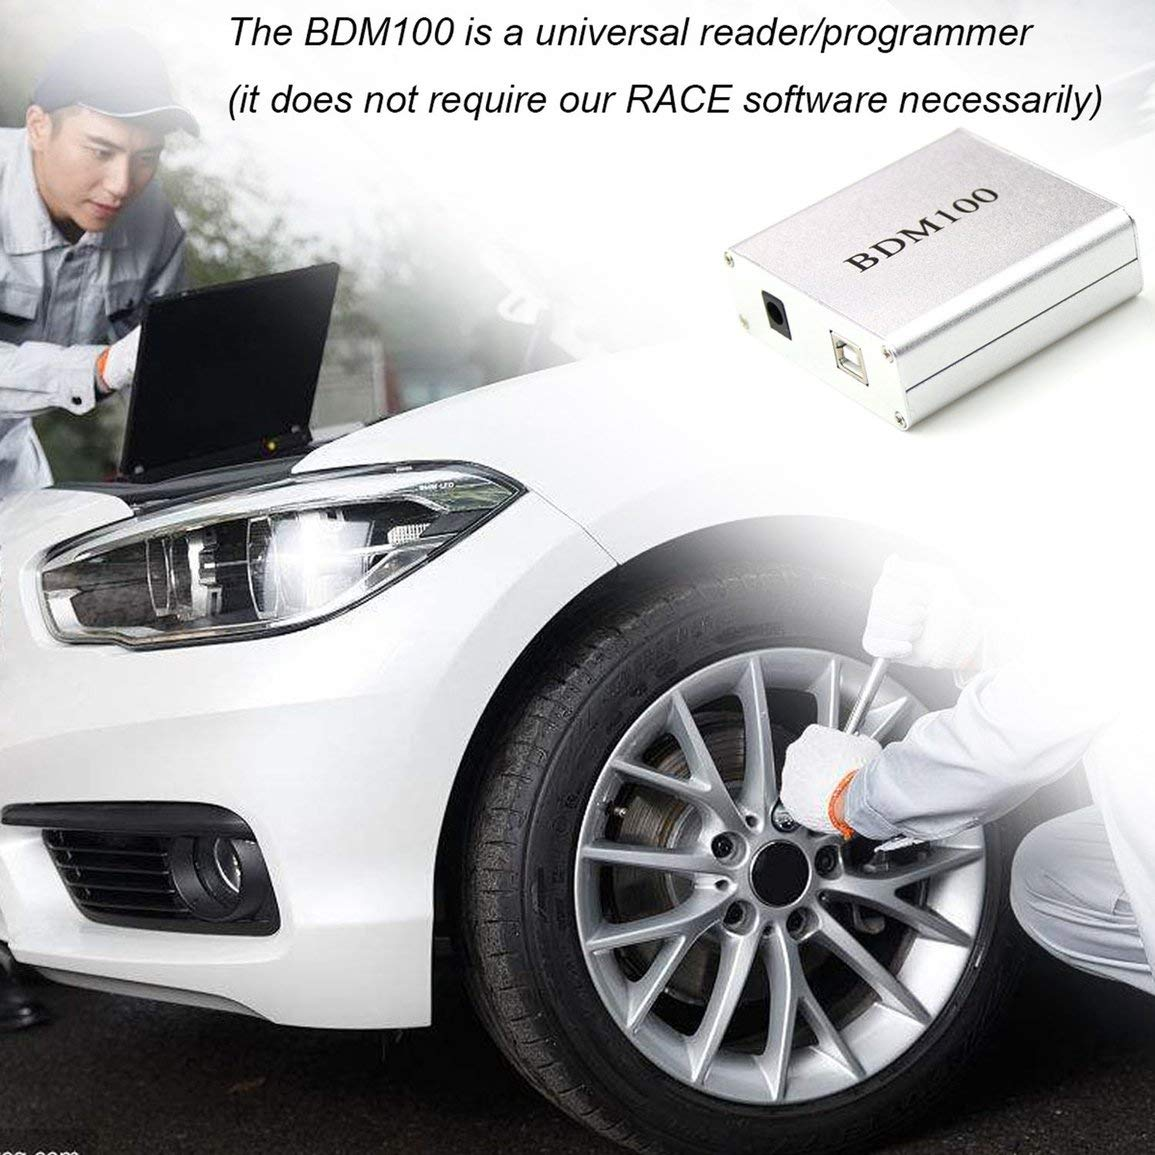 Fantasyworld Universal BDM 100 Chip Tuning ECU Lecteur Programmer BDM100 Chip Turning Outil BDM Interface de Diagnostic